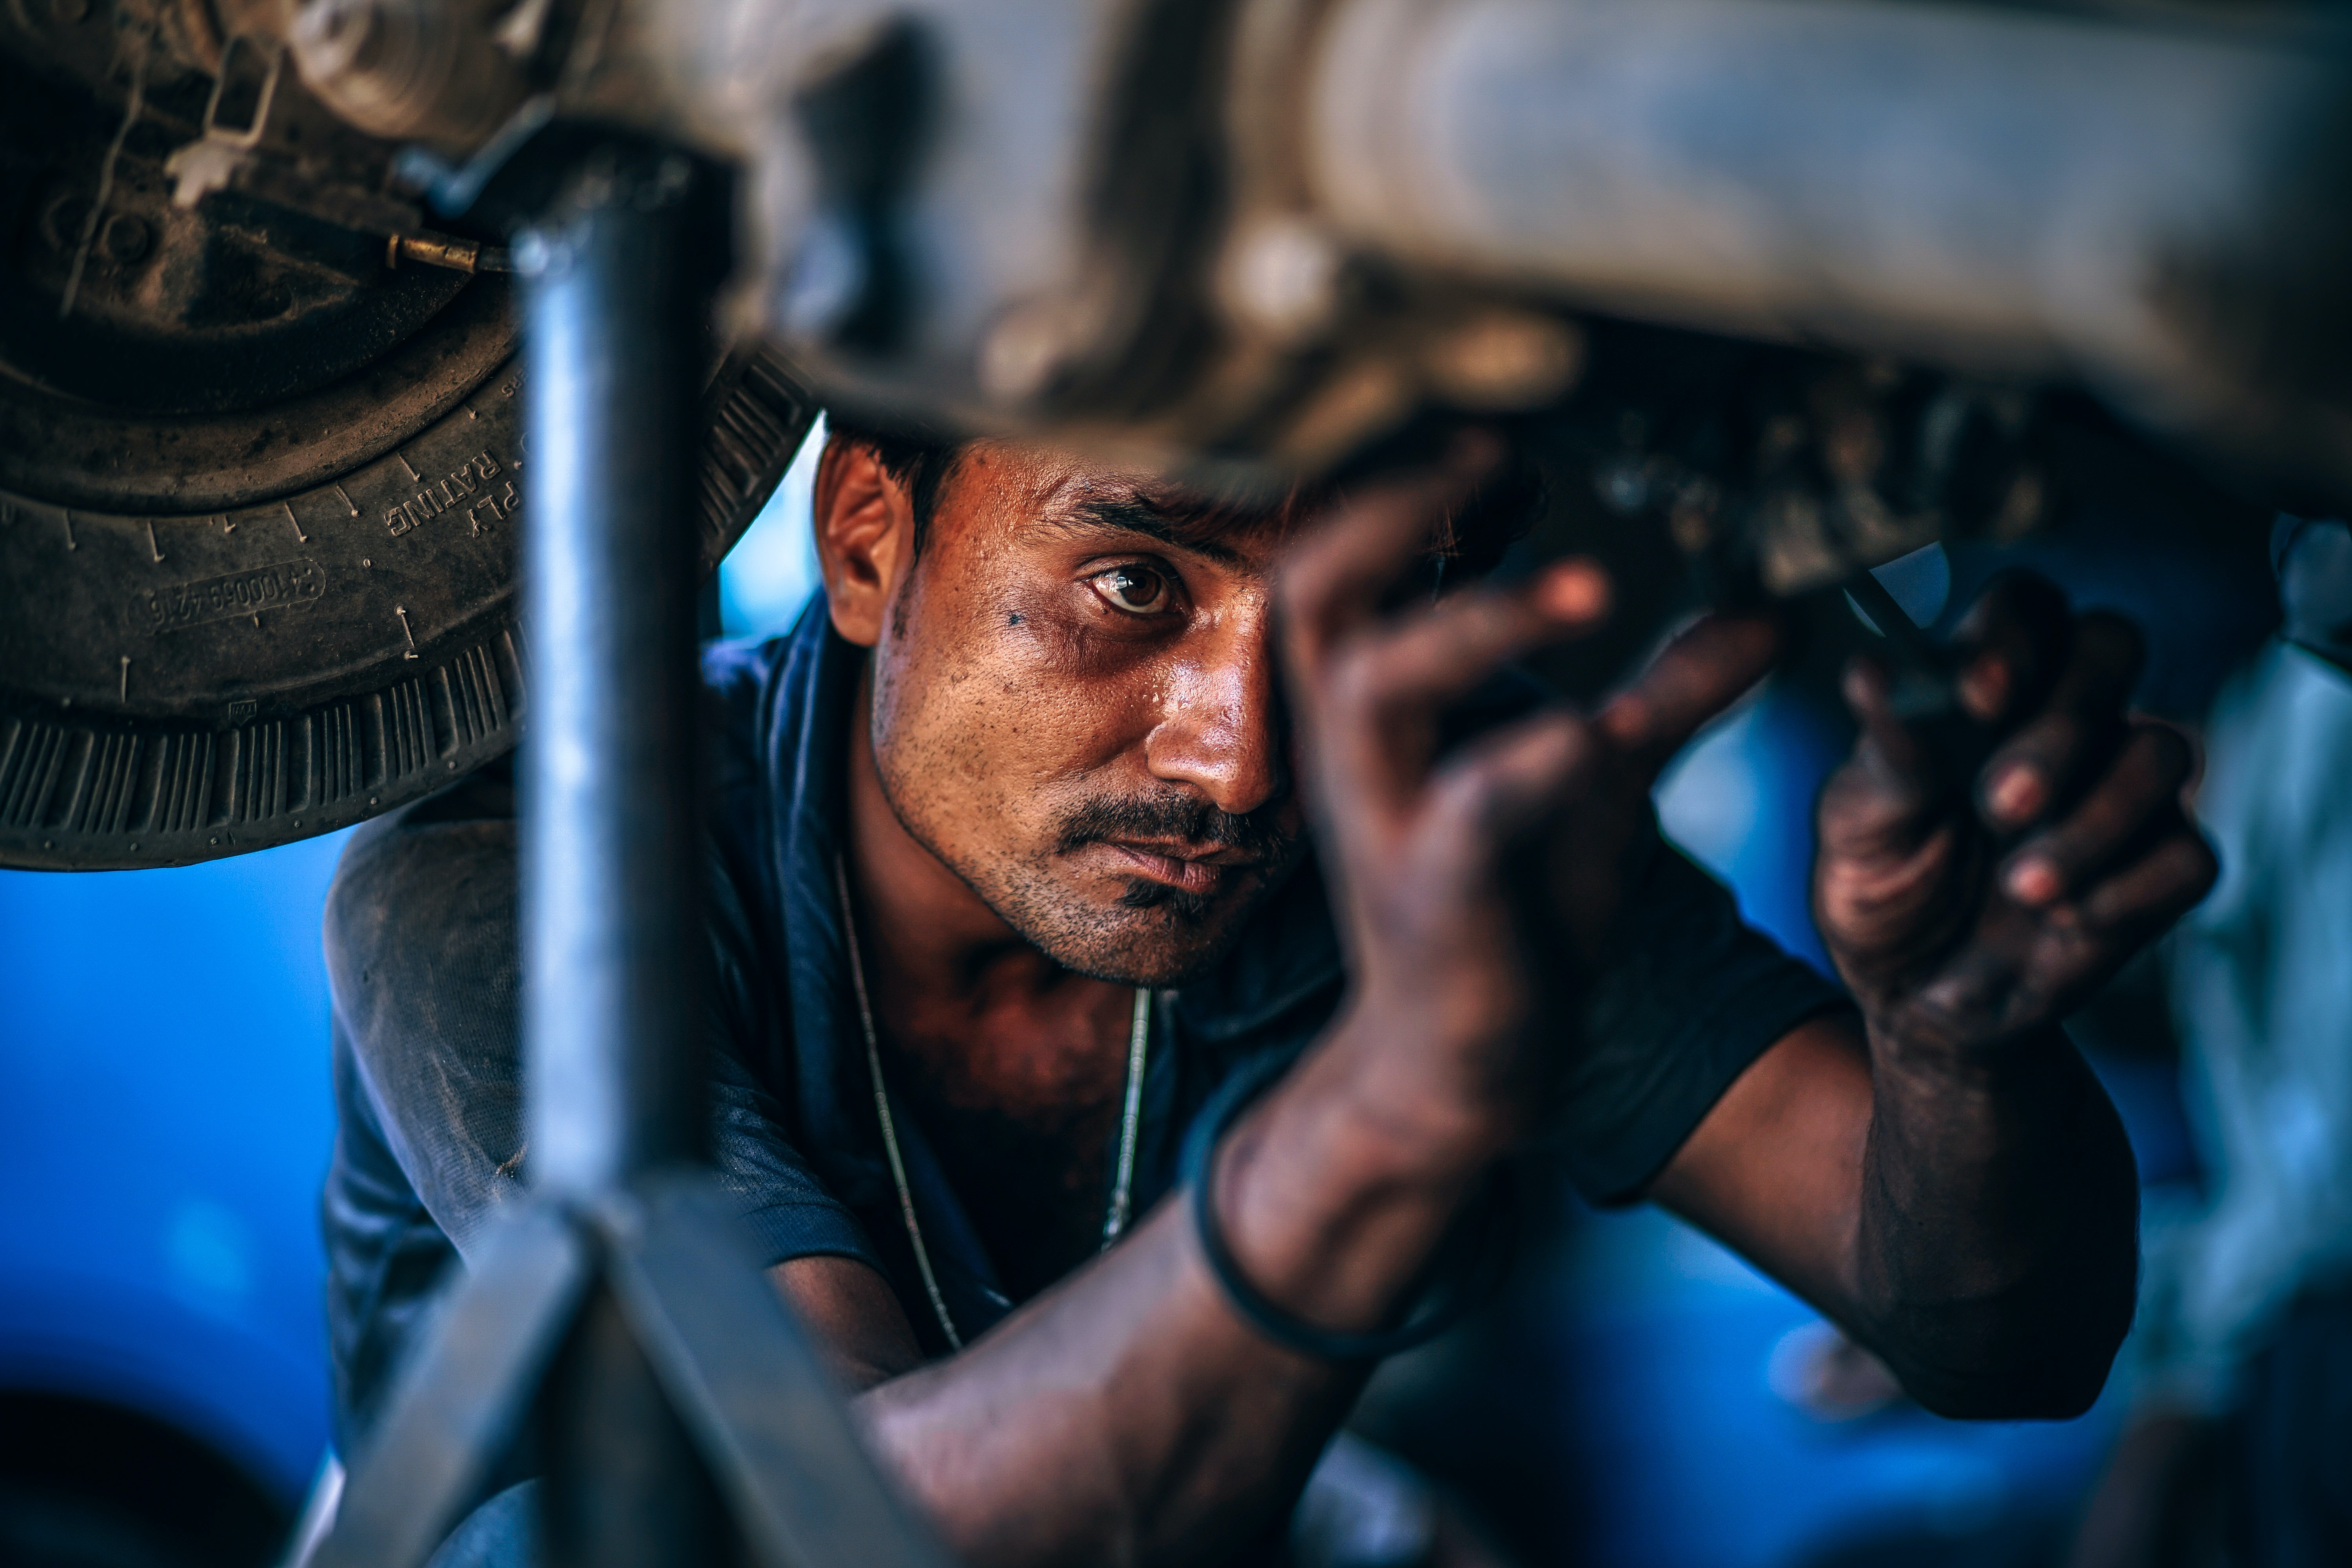 man repairing vehicle